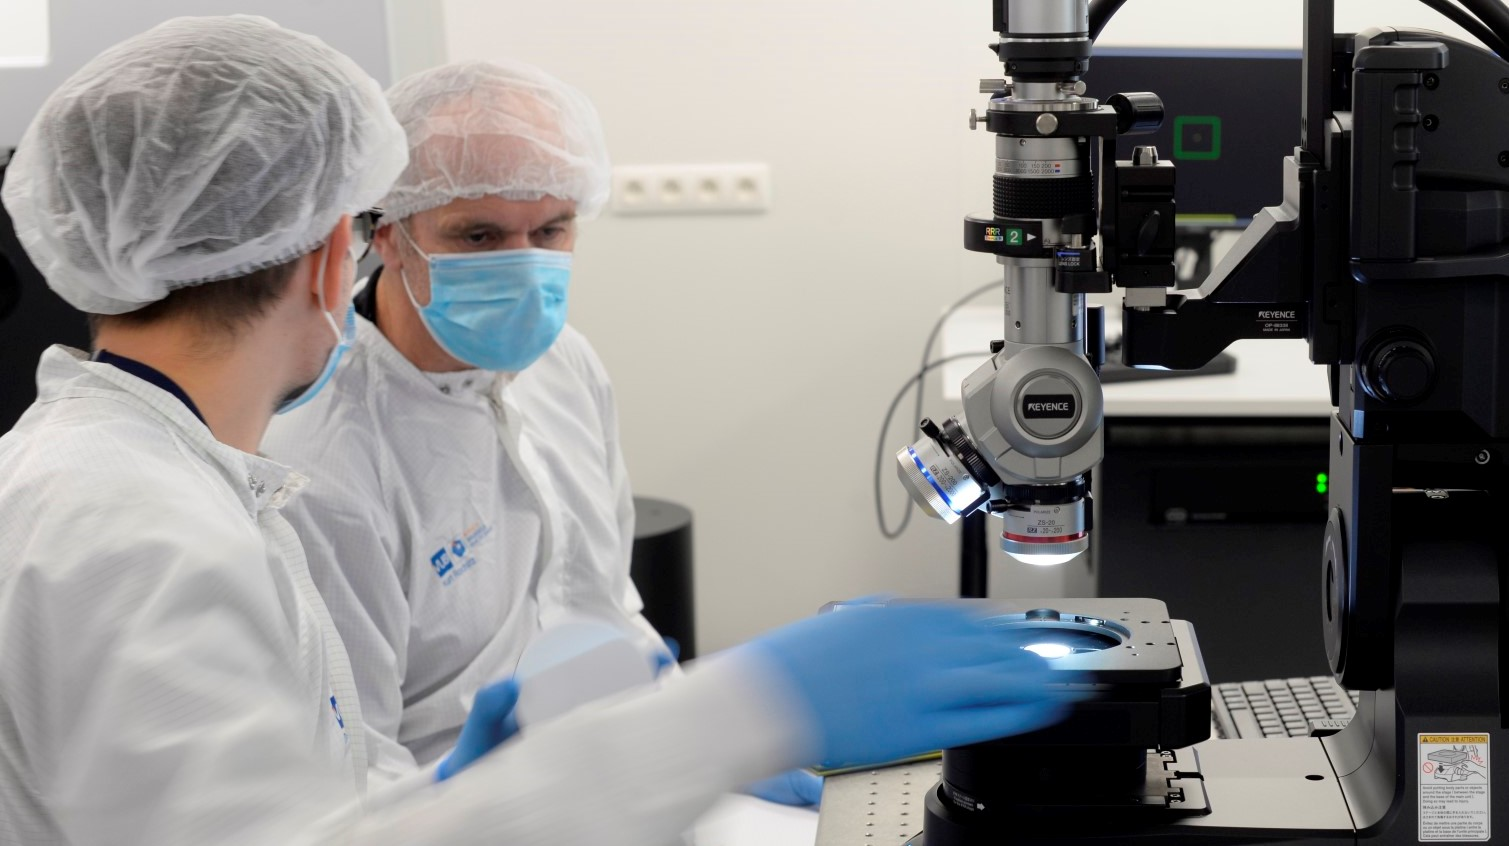 two photonics engineers working in a clean room wearing protective equipment